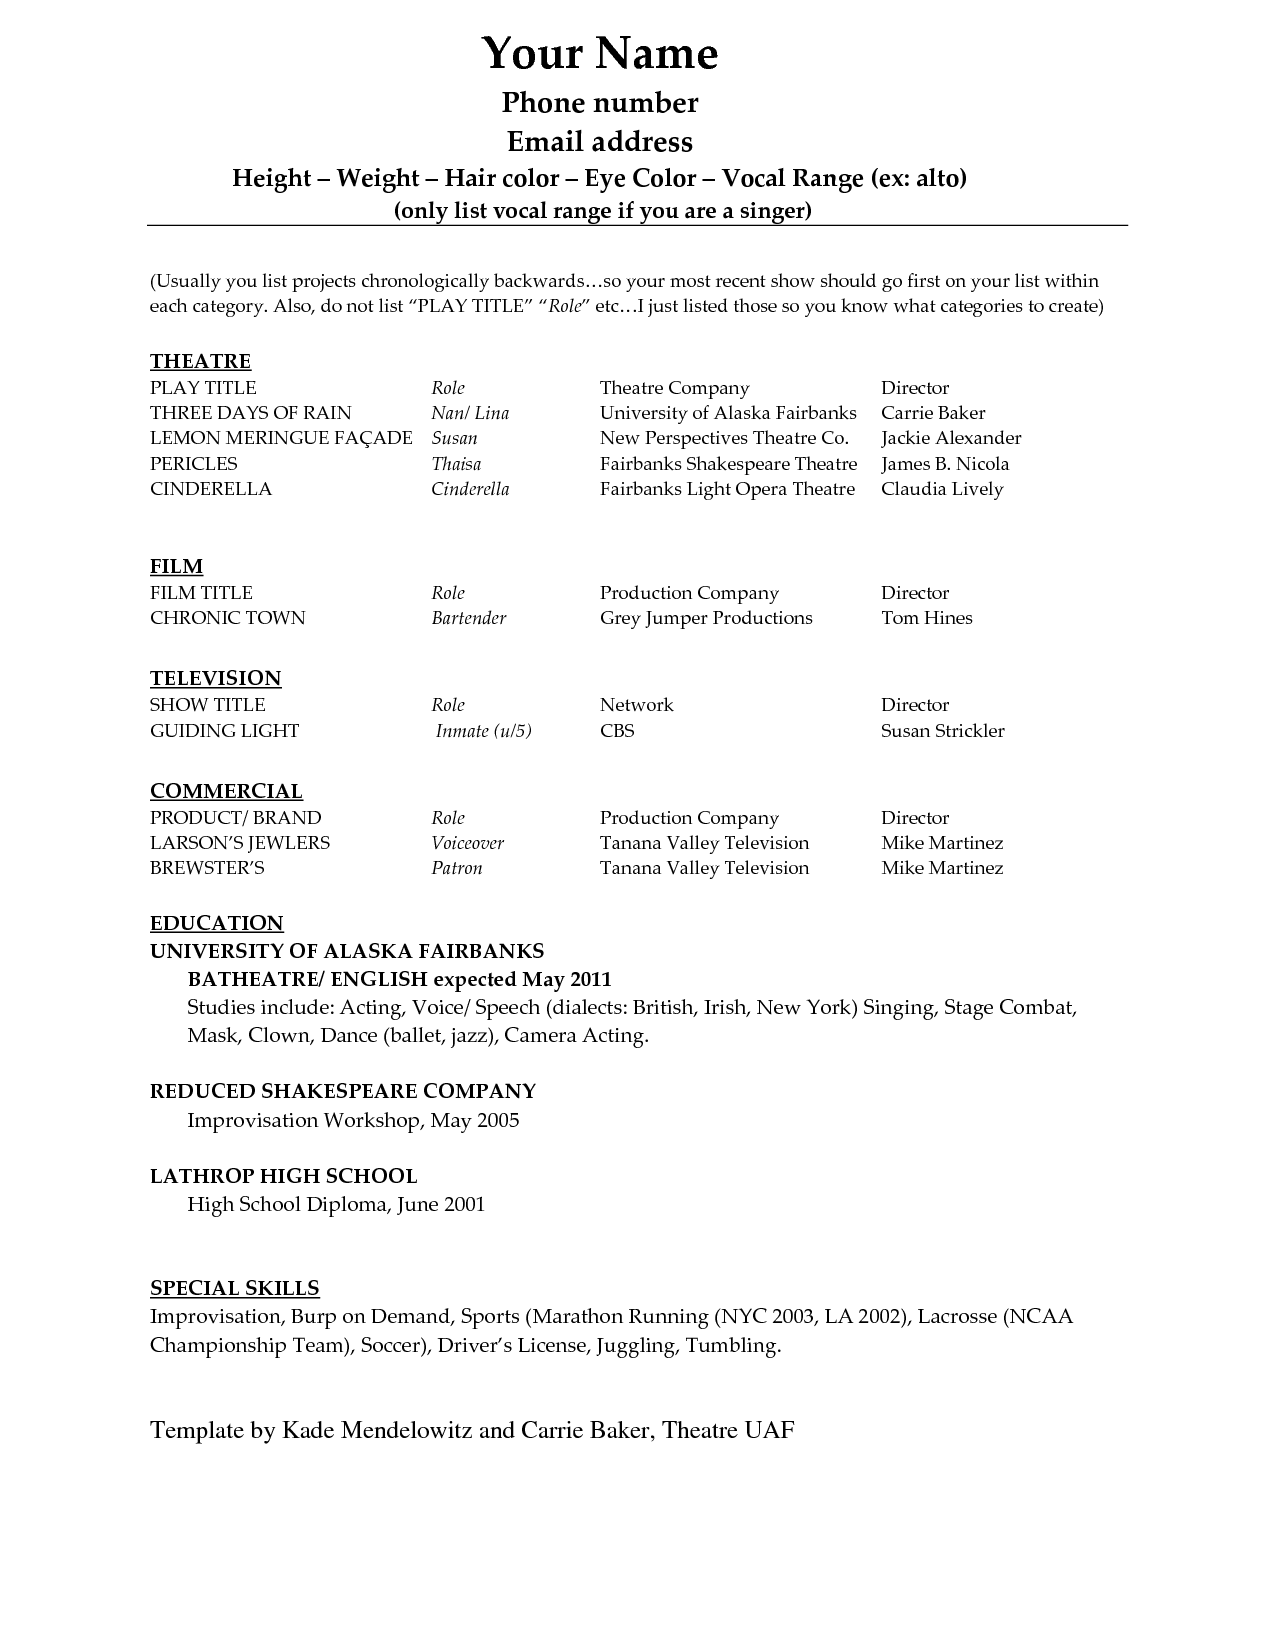 Microsoft Office Templates Resume Stunning Acting Resume Template Download Free  Httpwwwresumecareer